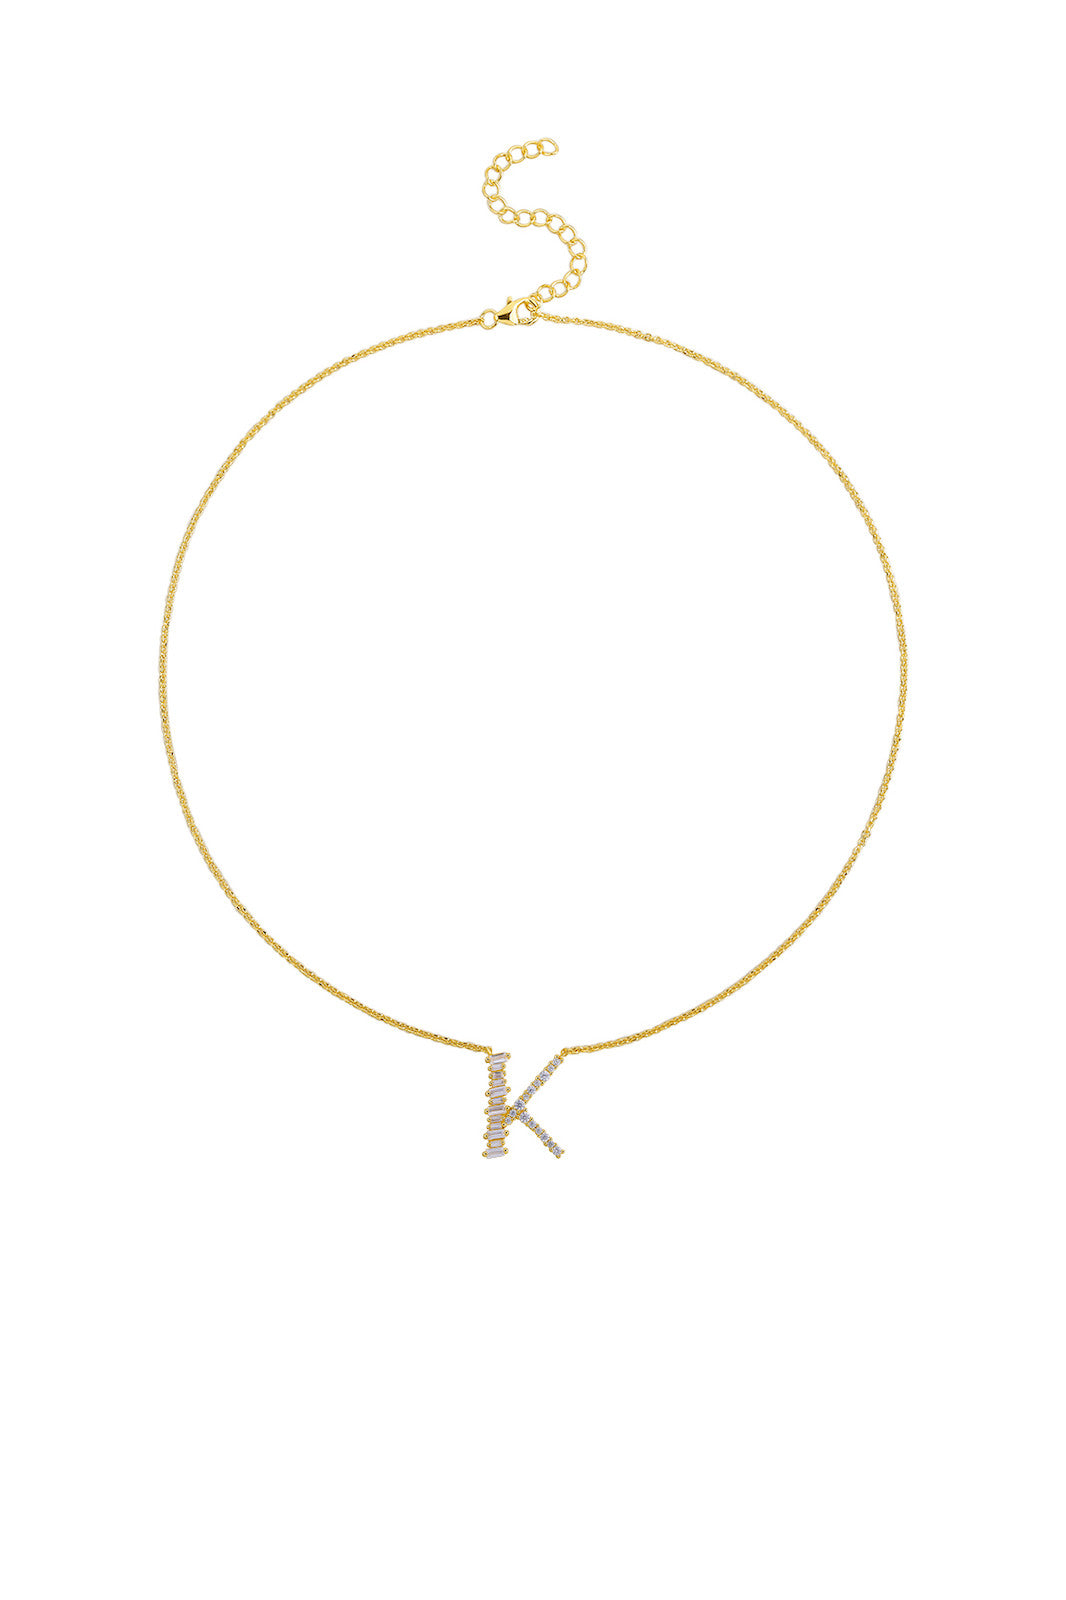 Gold Plated Sterling Silver Initial Necklace - Letter K Detail